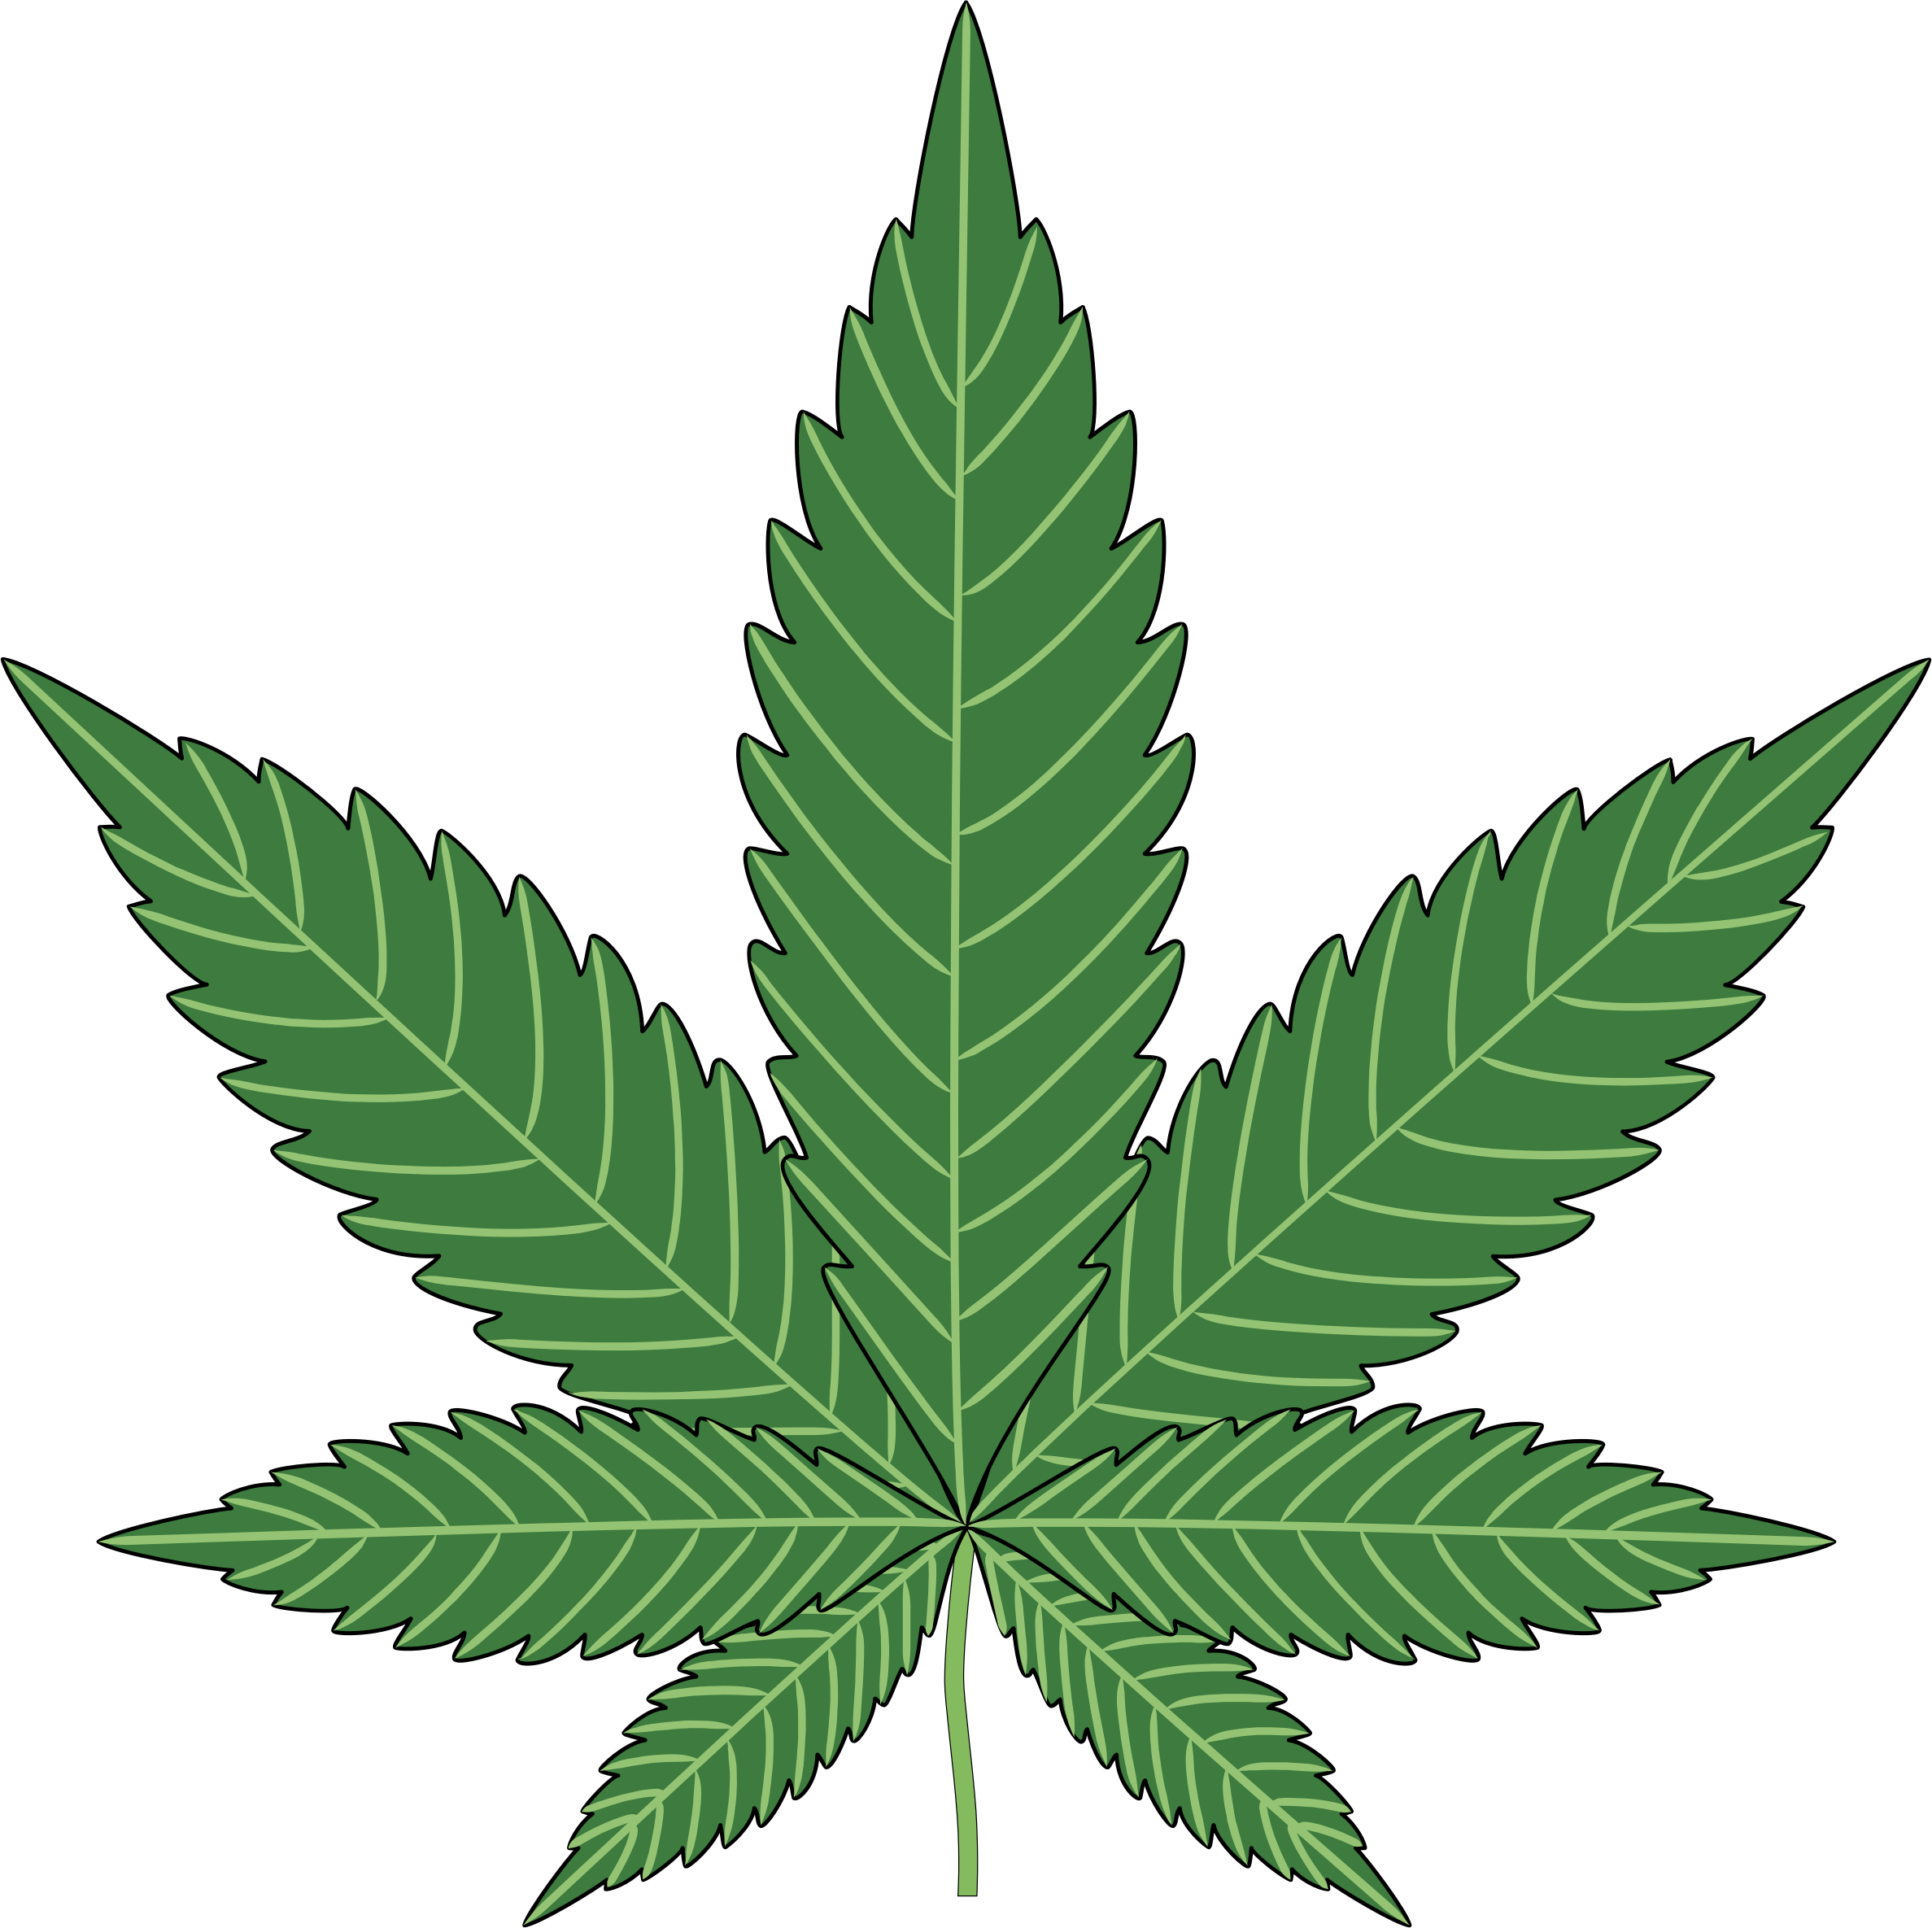 Weed svg animated. Kosher cannabis edibles whole